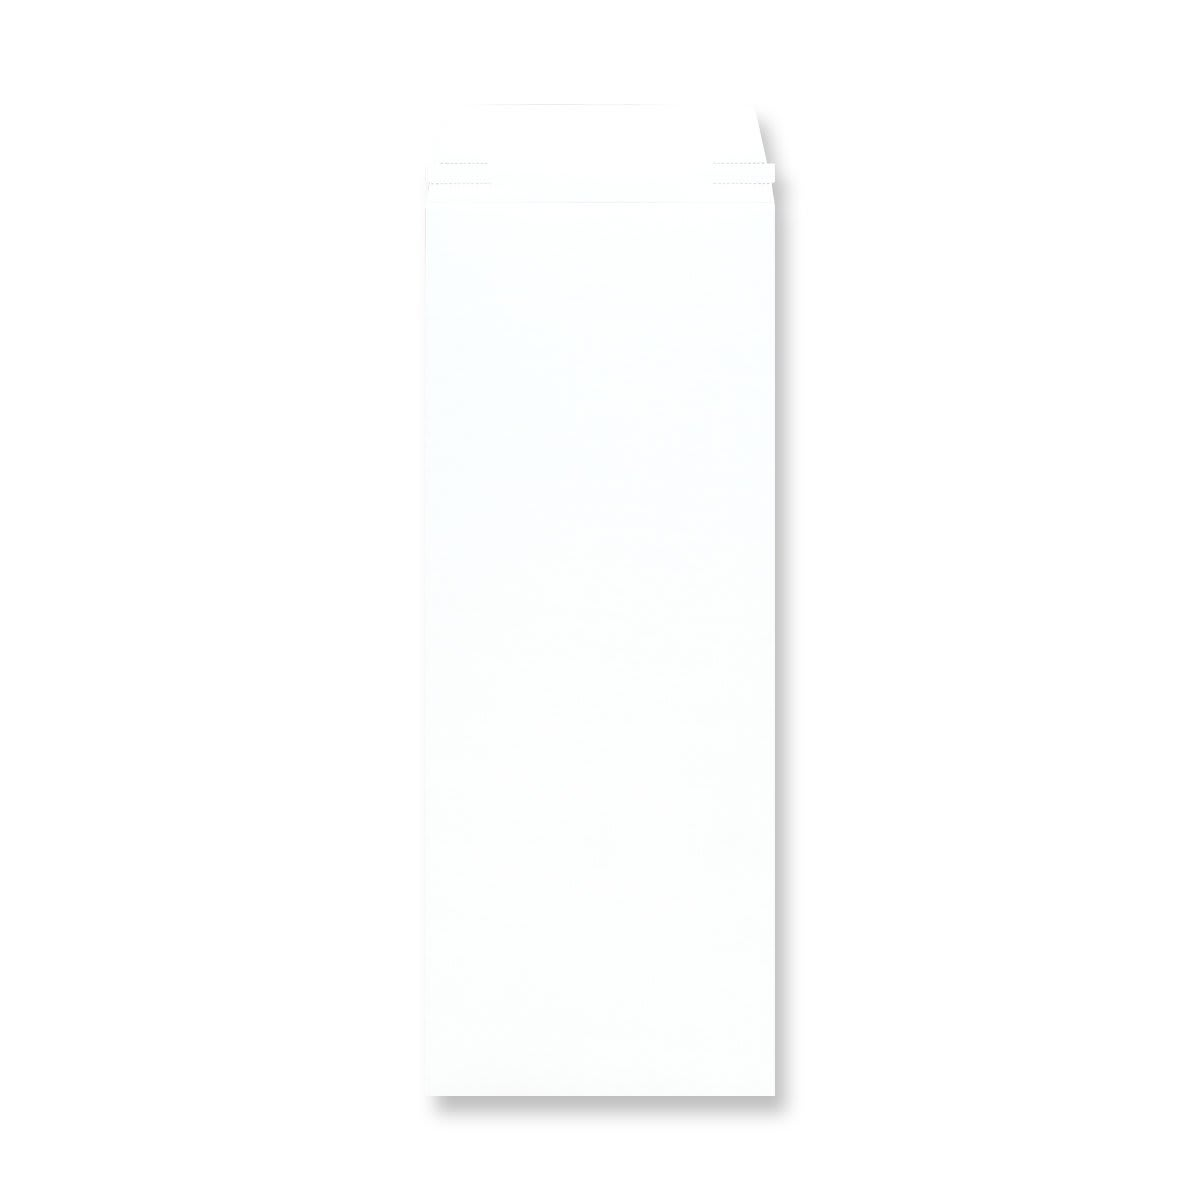 440 x 170MM WHITE ALL-BOARD ENVELOPES 350GSM